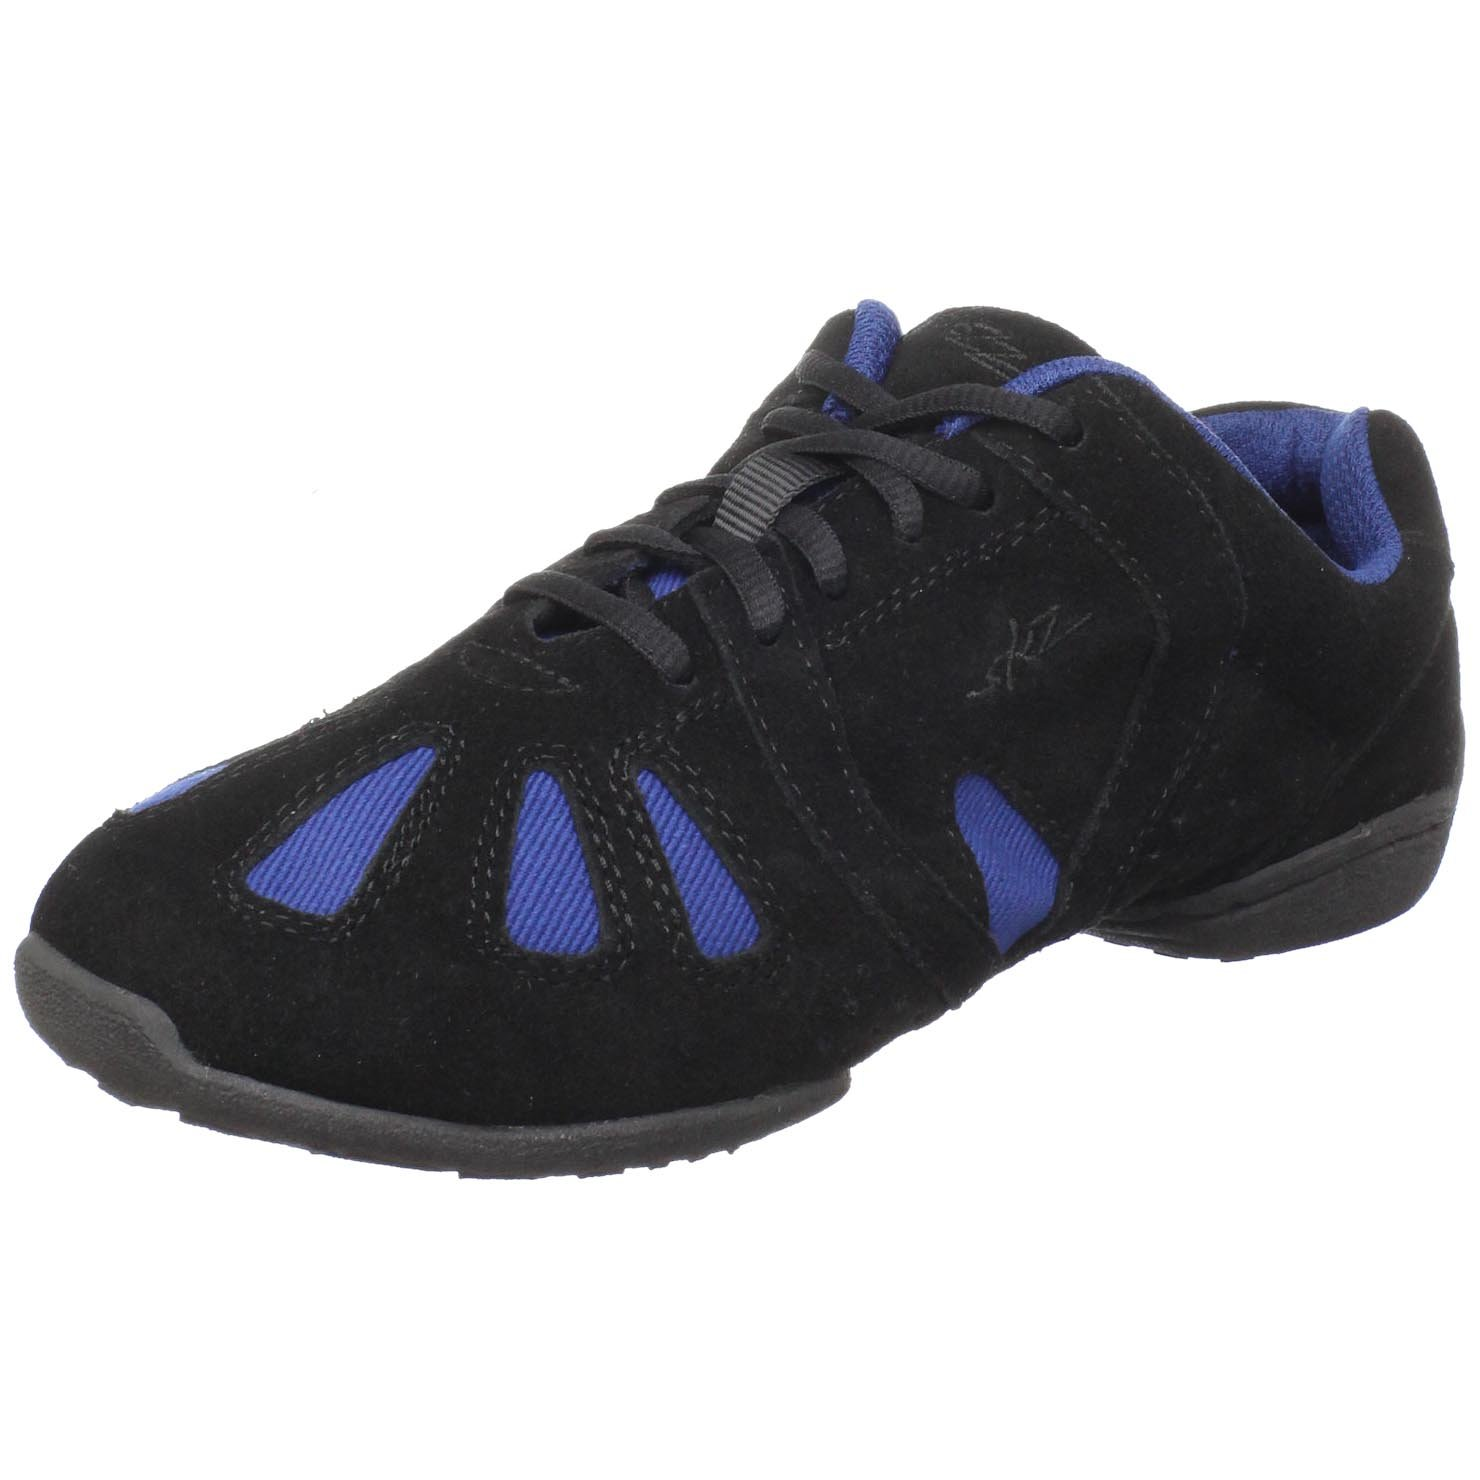 Sansha Dynamo Dance Sneaker,Black/Blue,7 (6 M US Women's) by Sansha